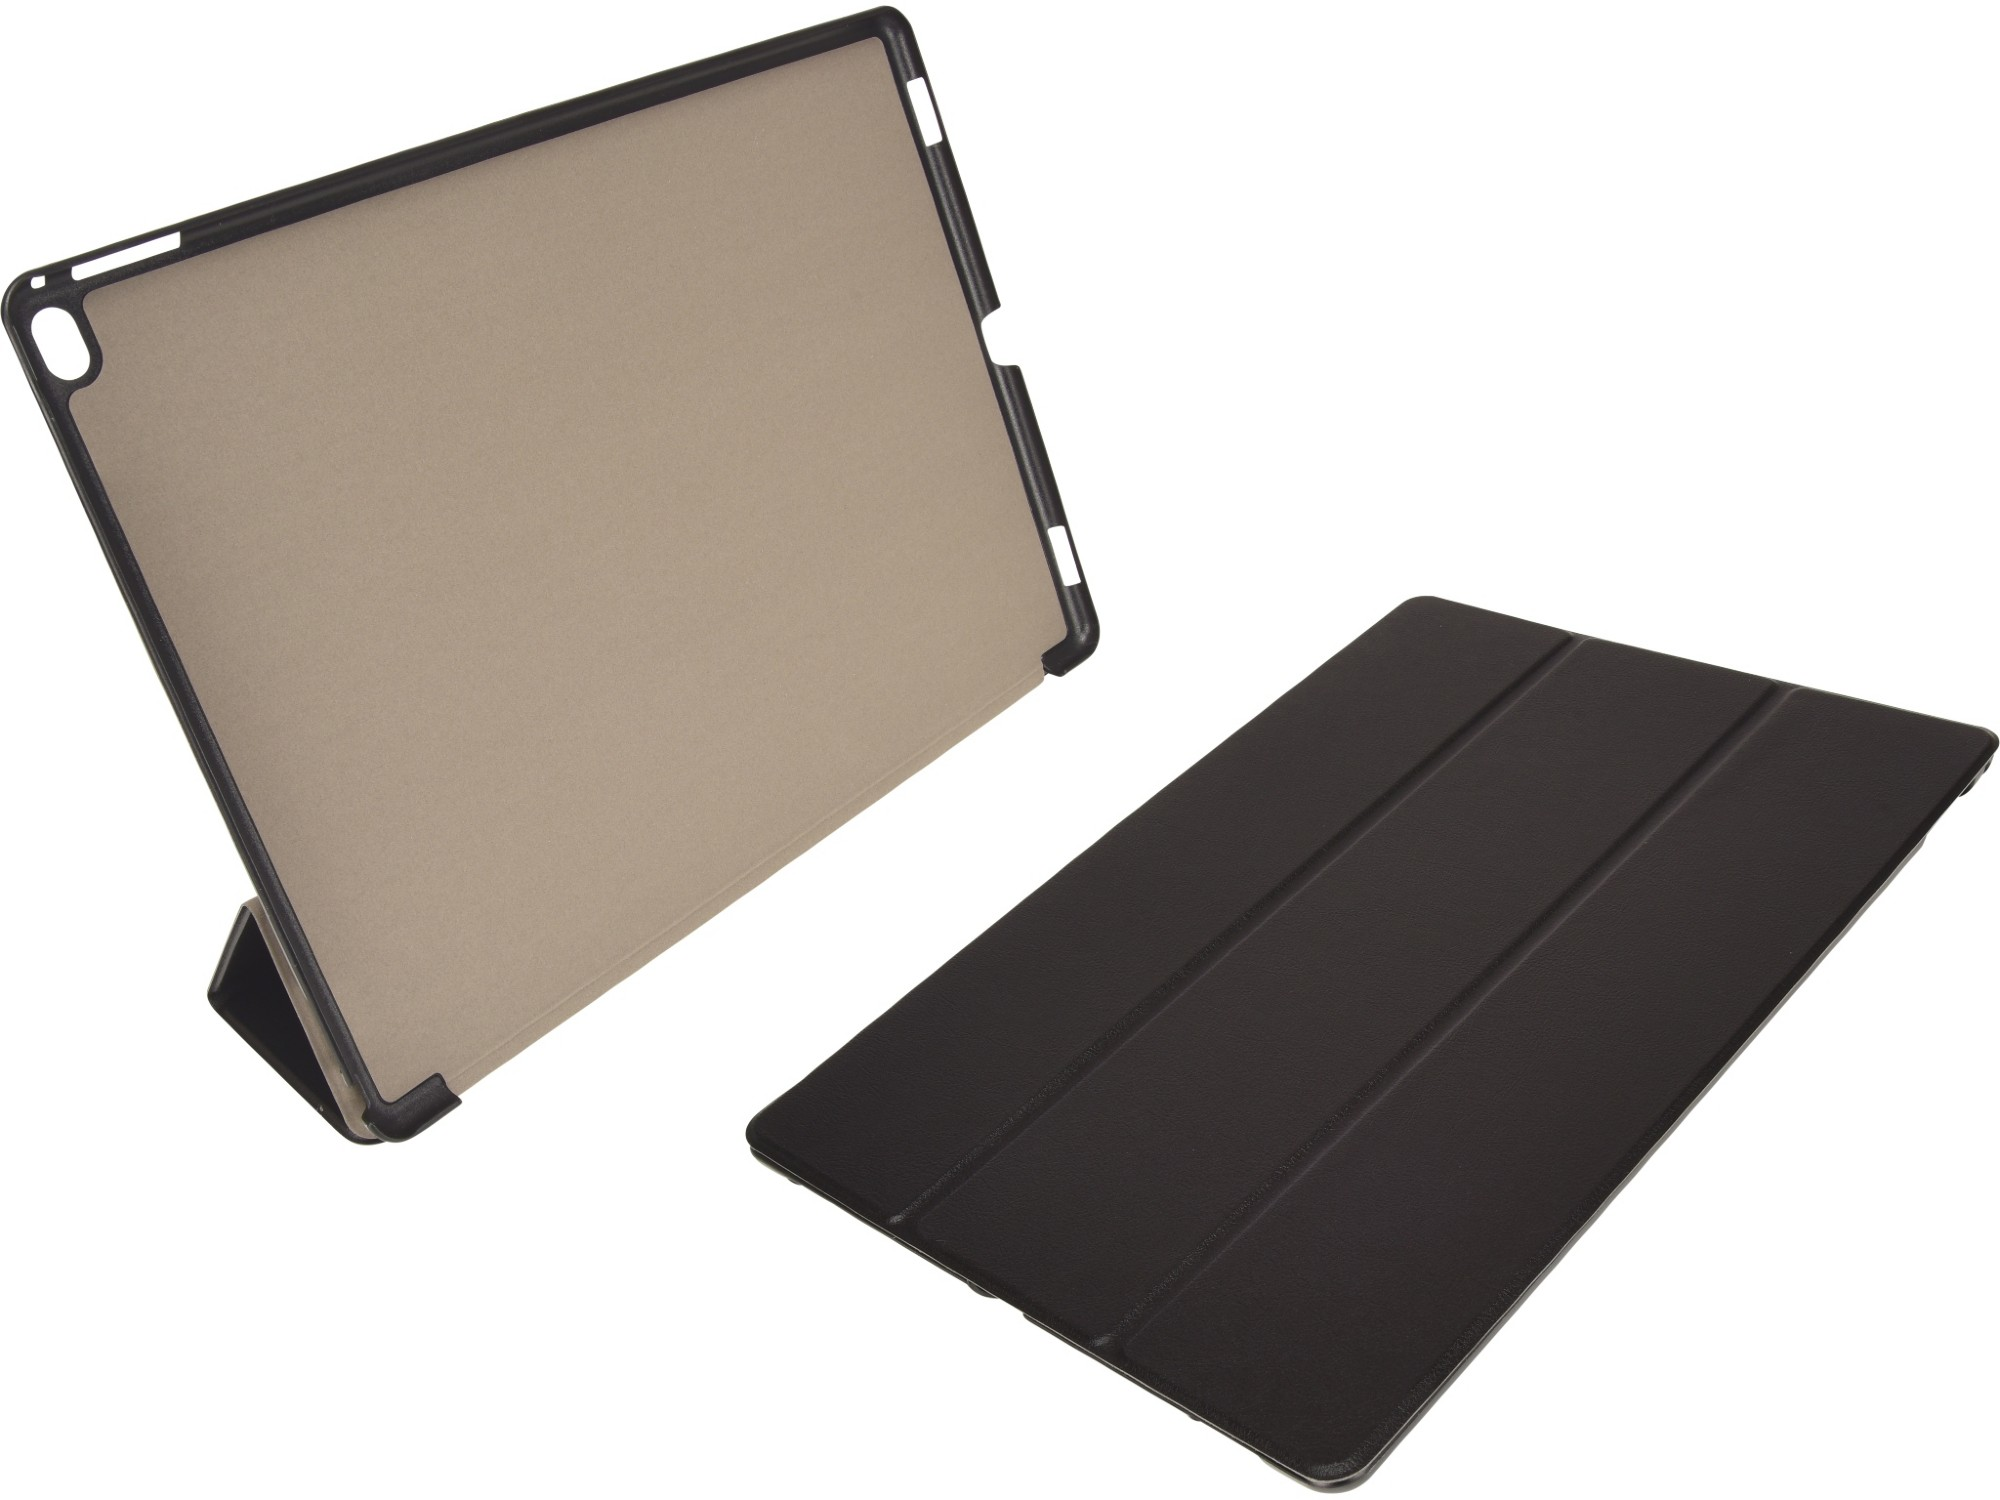 SANDBERG 405-81 WRAPON CASE IPADPRO 12.9 BLACK